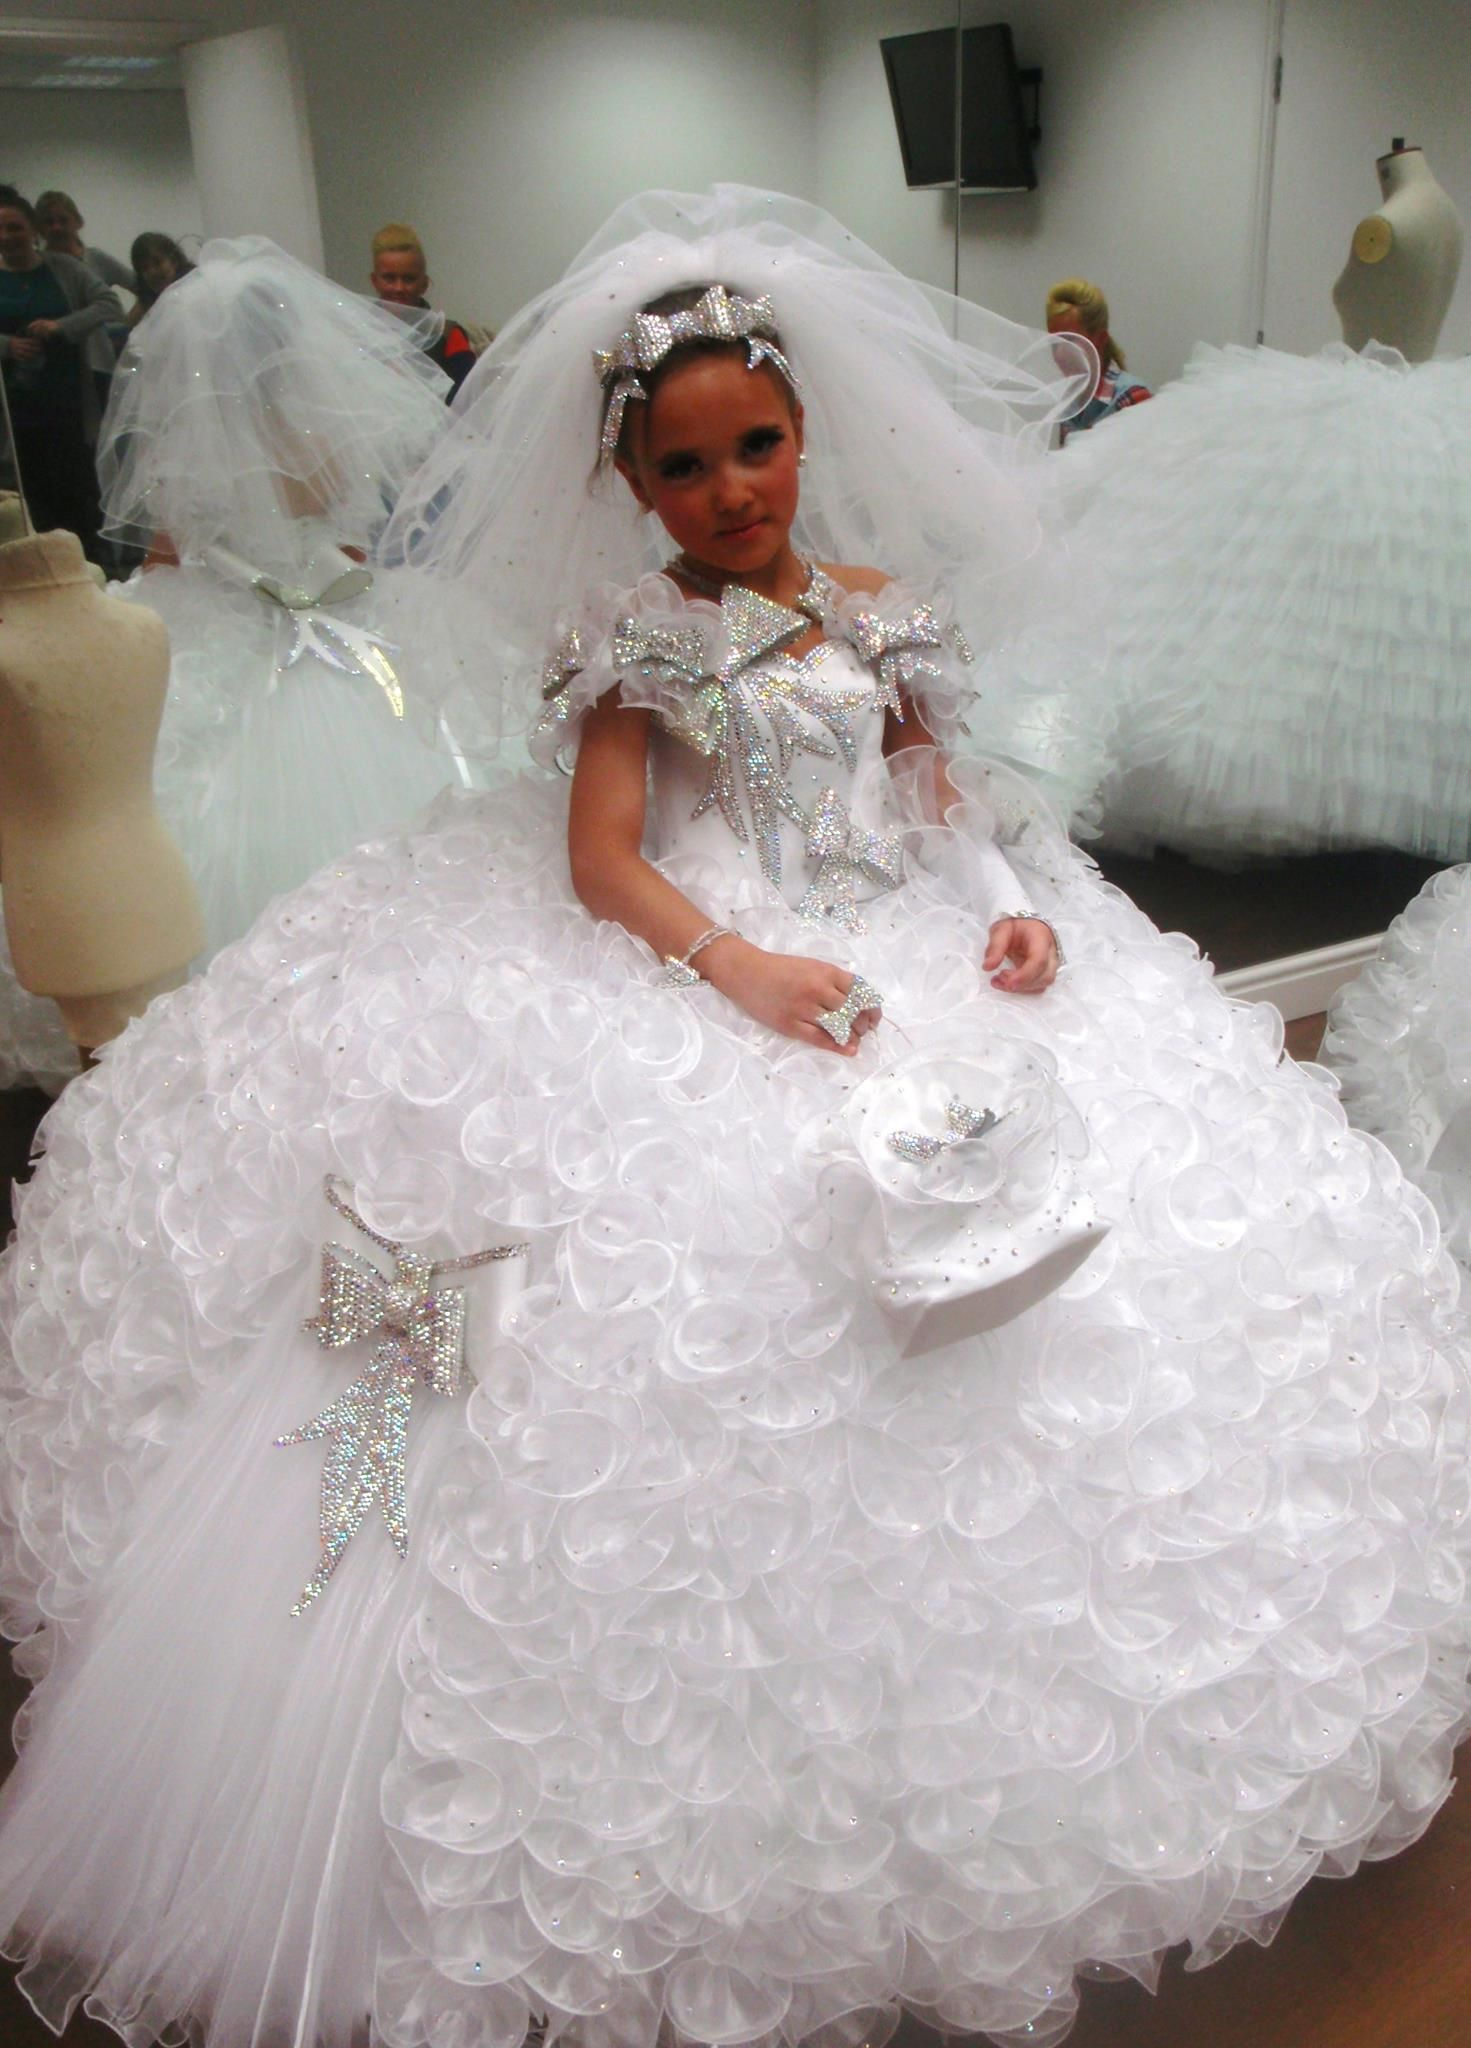 Another 1st communion dress GYPSY BLING! Pinterest